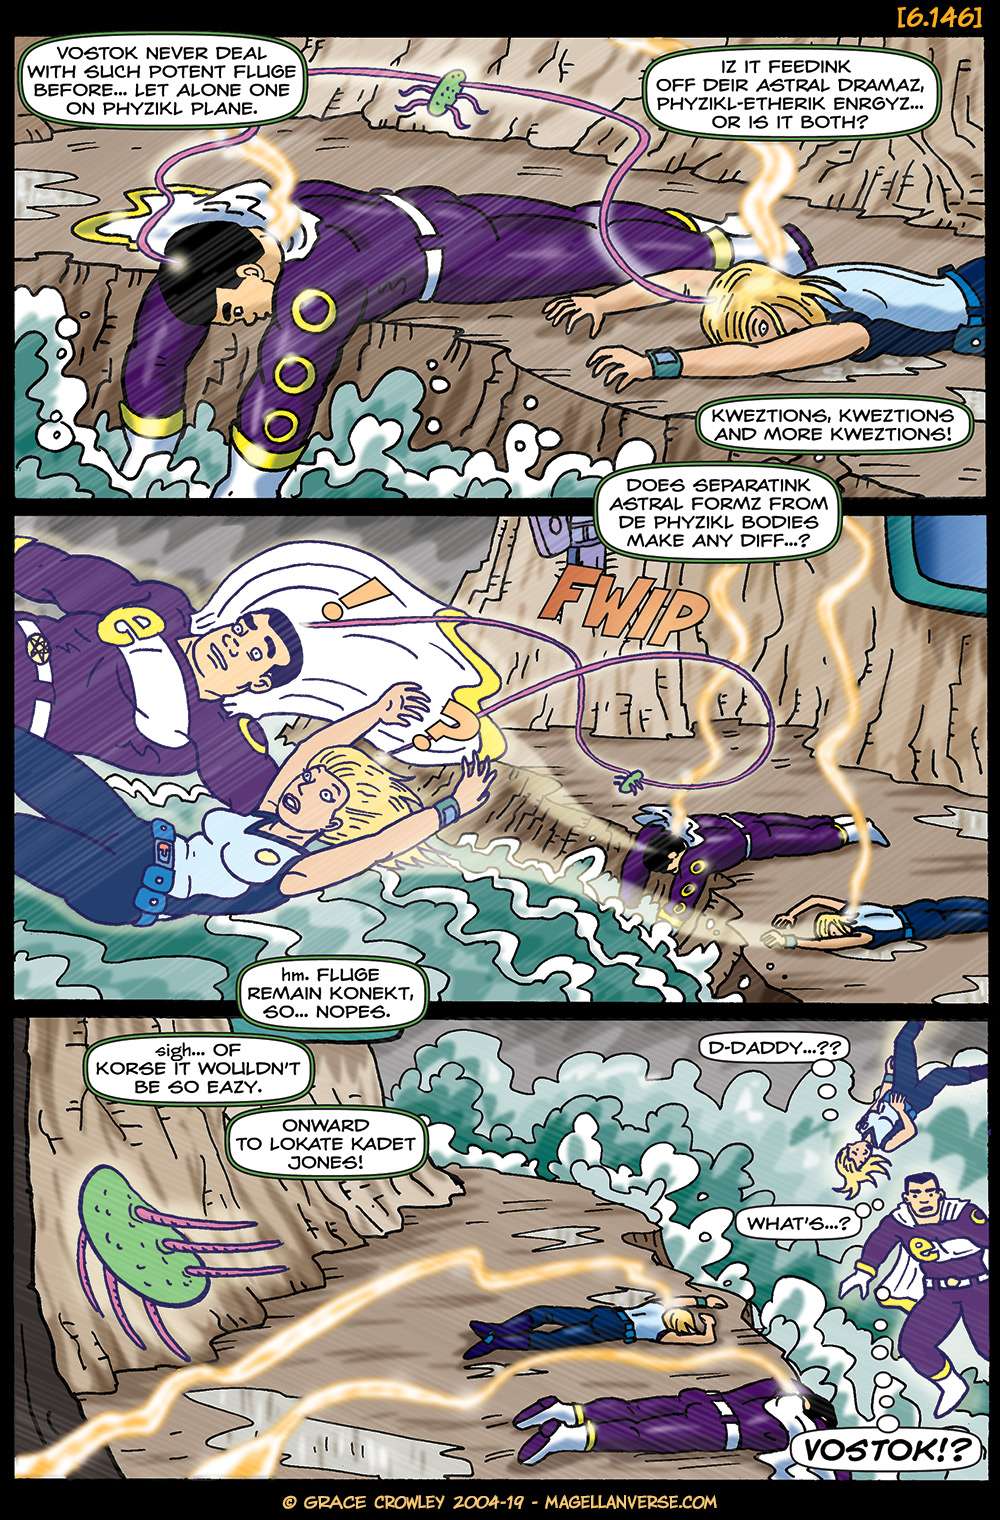 Page 6.146